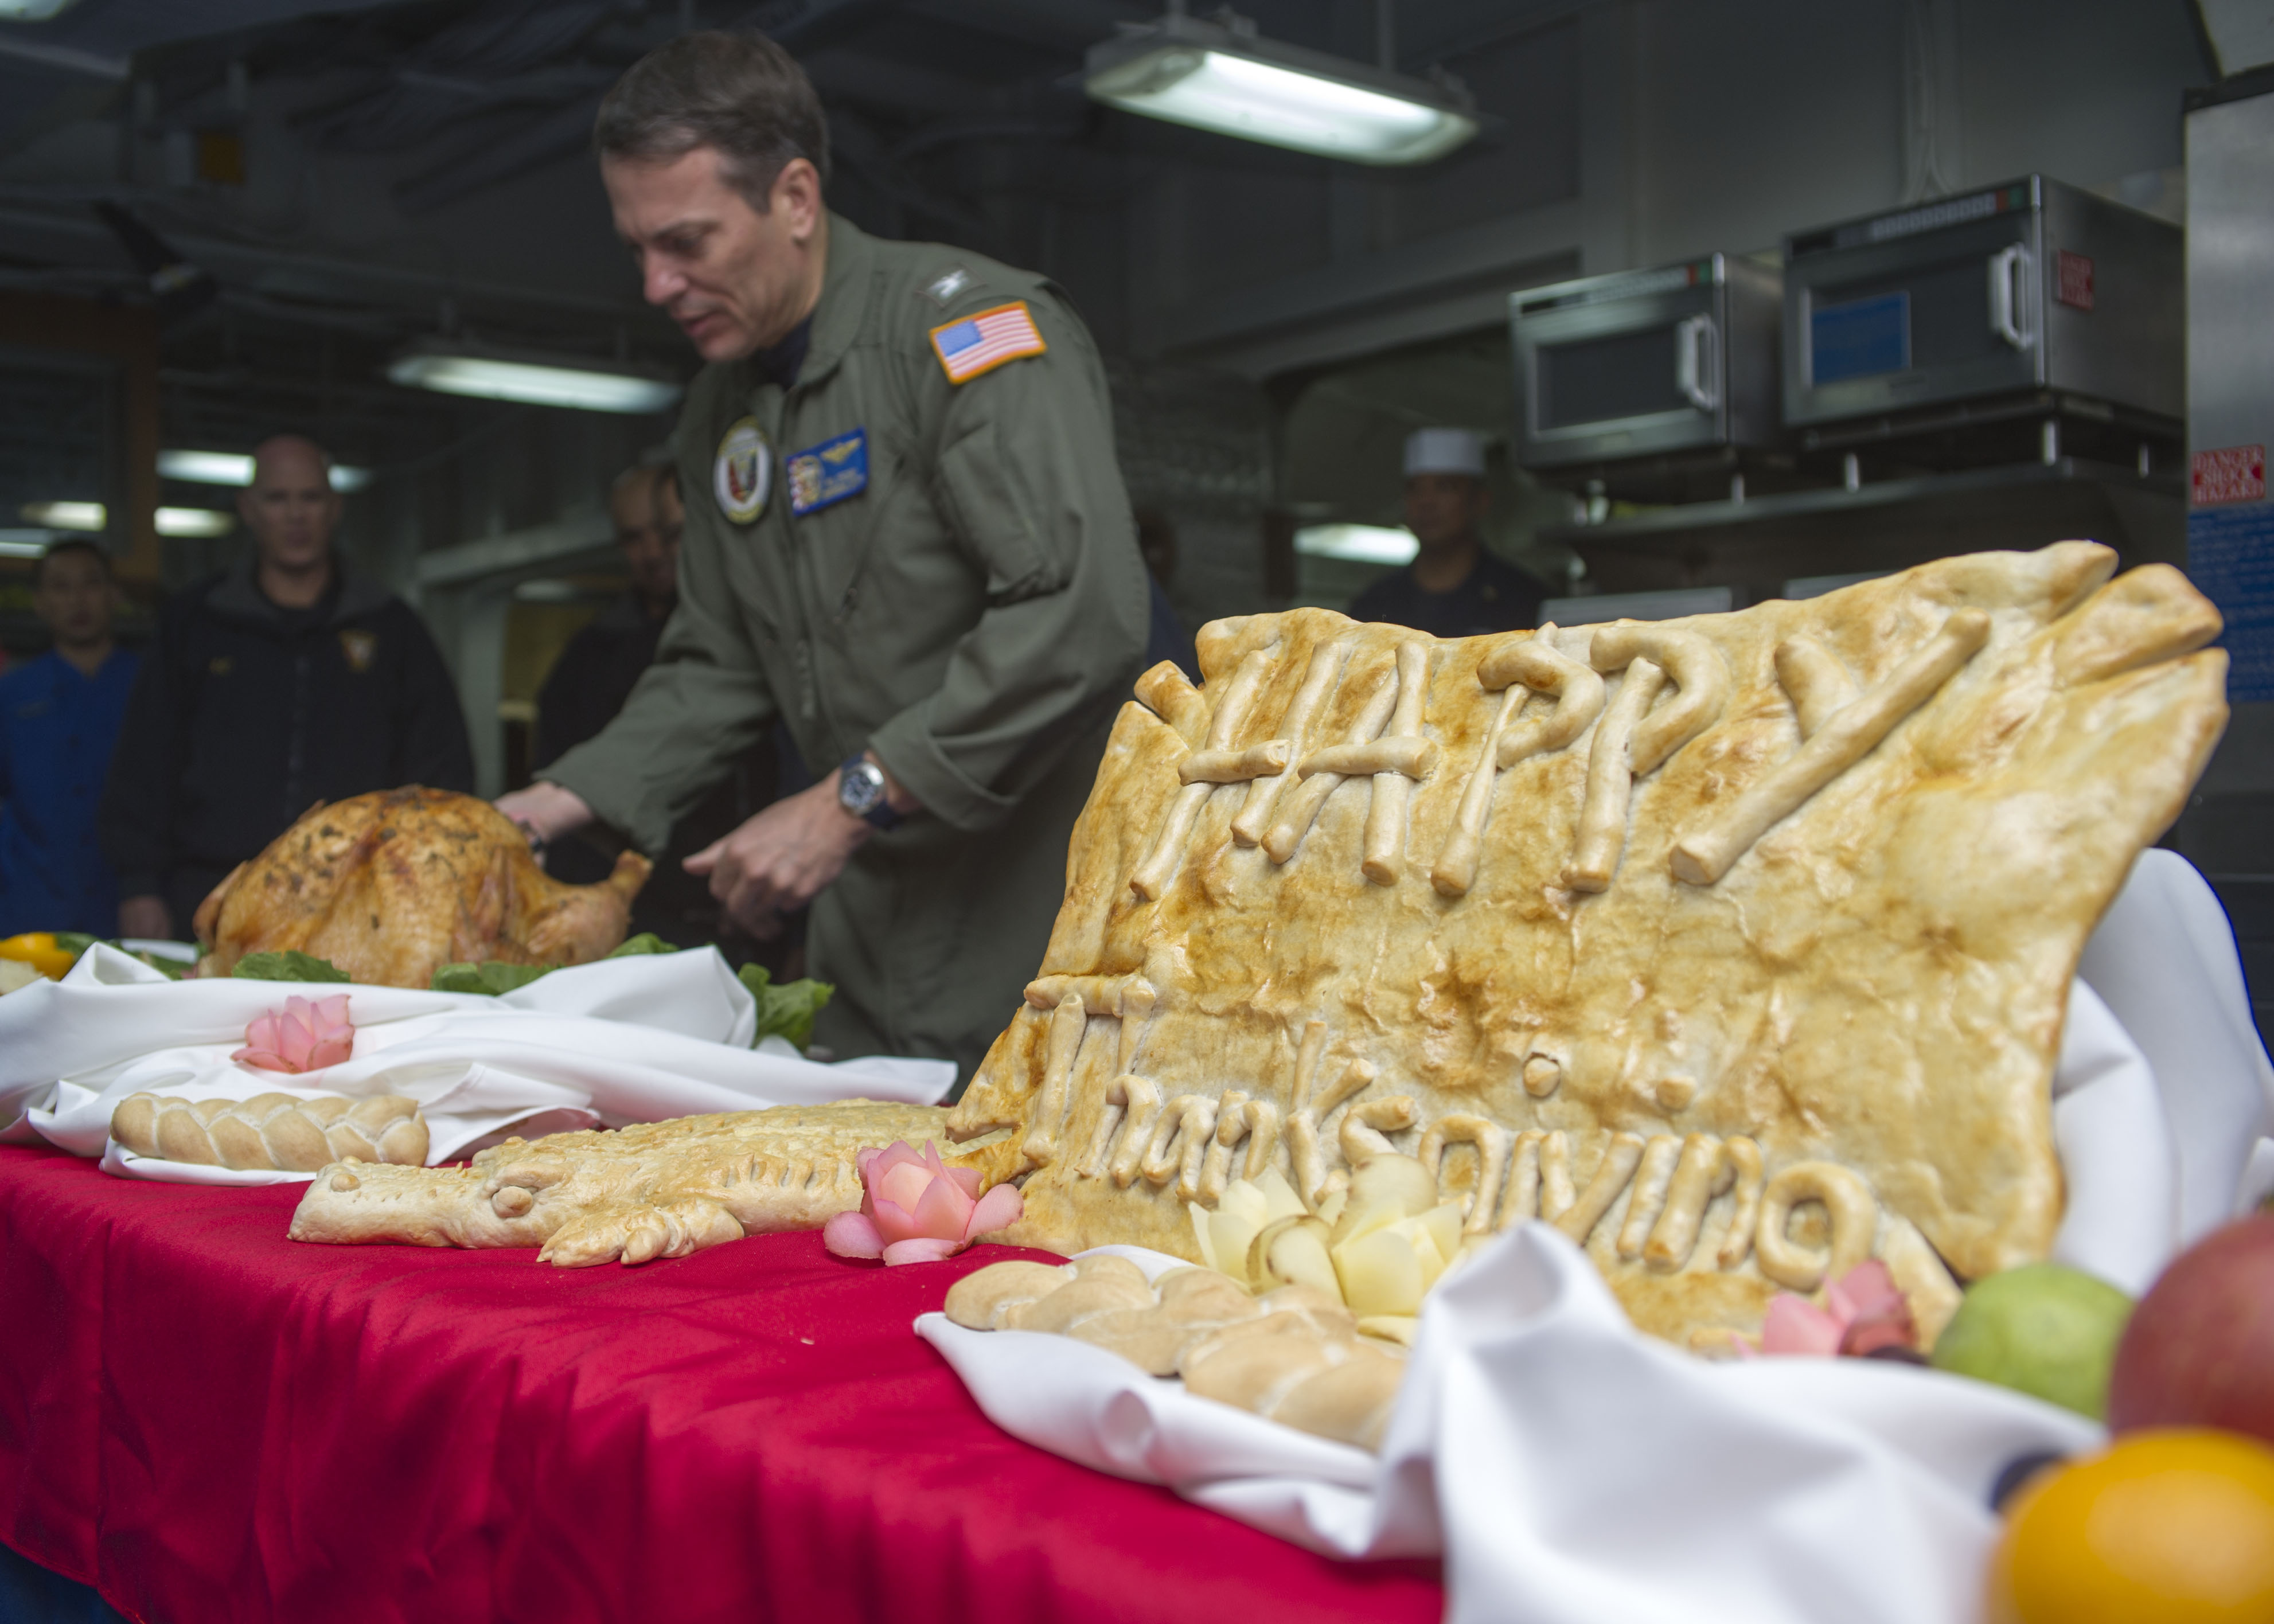 141127-N-LQ926-008 SASEBO, Japan (Nov. 27, 2014) Capt. Paul C. Spedero, commanding officer of the amphibious assault ship USS Peleliu (LHA 5), carves a Thanksgiving turkey before the meal on the mess decks of Peleliu. Peleliu is on its final western Pacific deployment in the U.S. 7th Fleet area of responsibility supporting security and stability in the Indo-Asia-Pacific region before decommissioning early next year. (U.S. Navy photo by Mass Communication Specialist 2nd Class Alex Van'tLeven/Released)